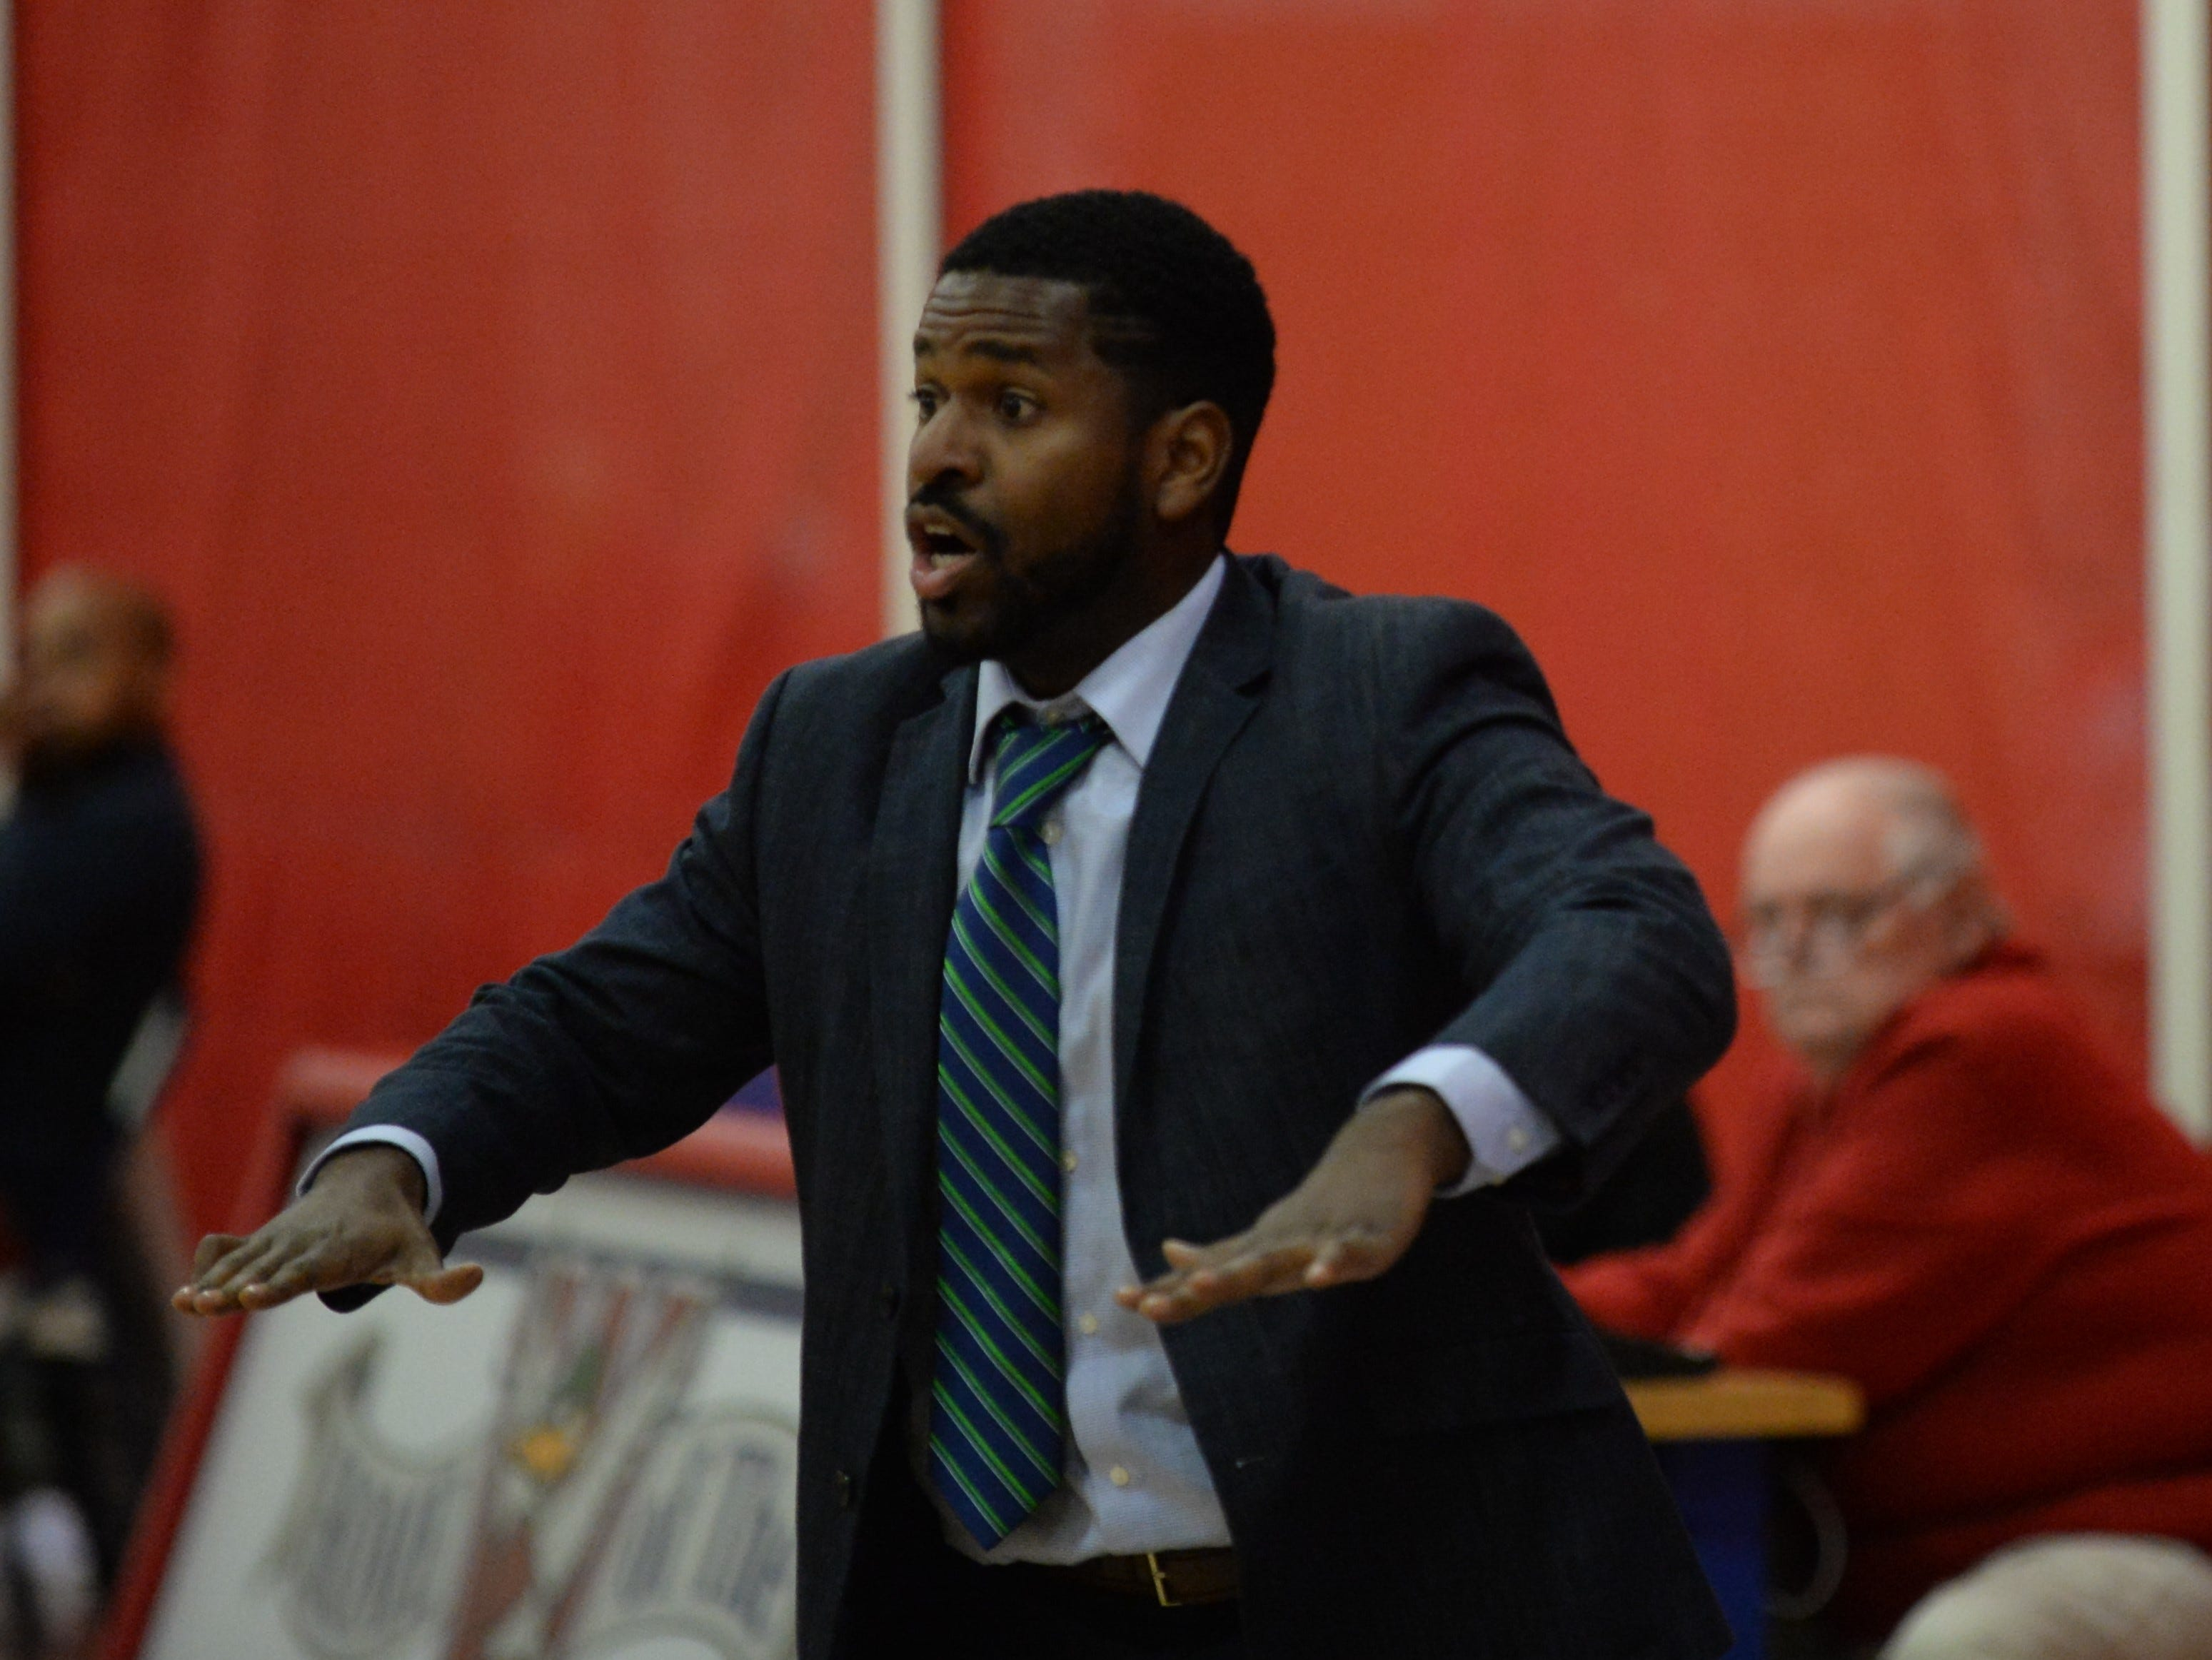 Delmarva Christian coach Jedidiah Roach signals to his team during the ESIAC Championship game on Thursday, Feb. 21, 2019. Delmarva Christian won the contest, 37-28.